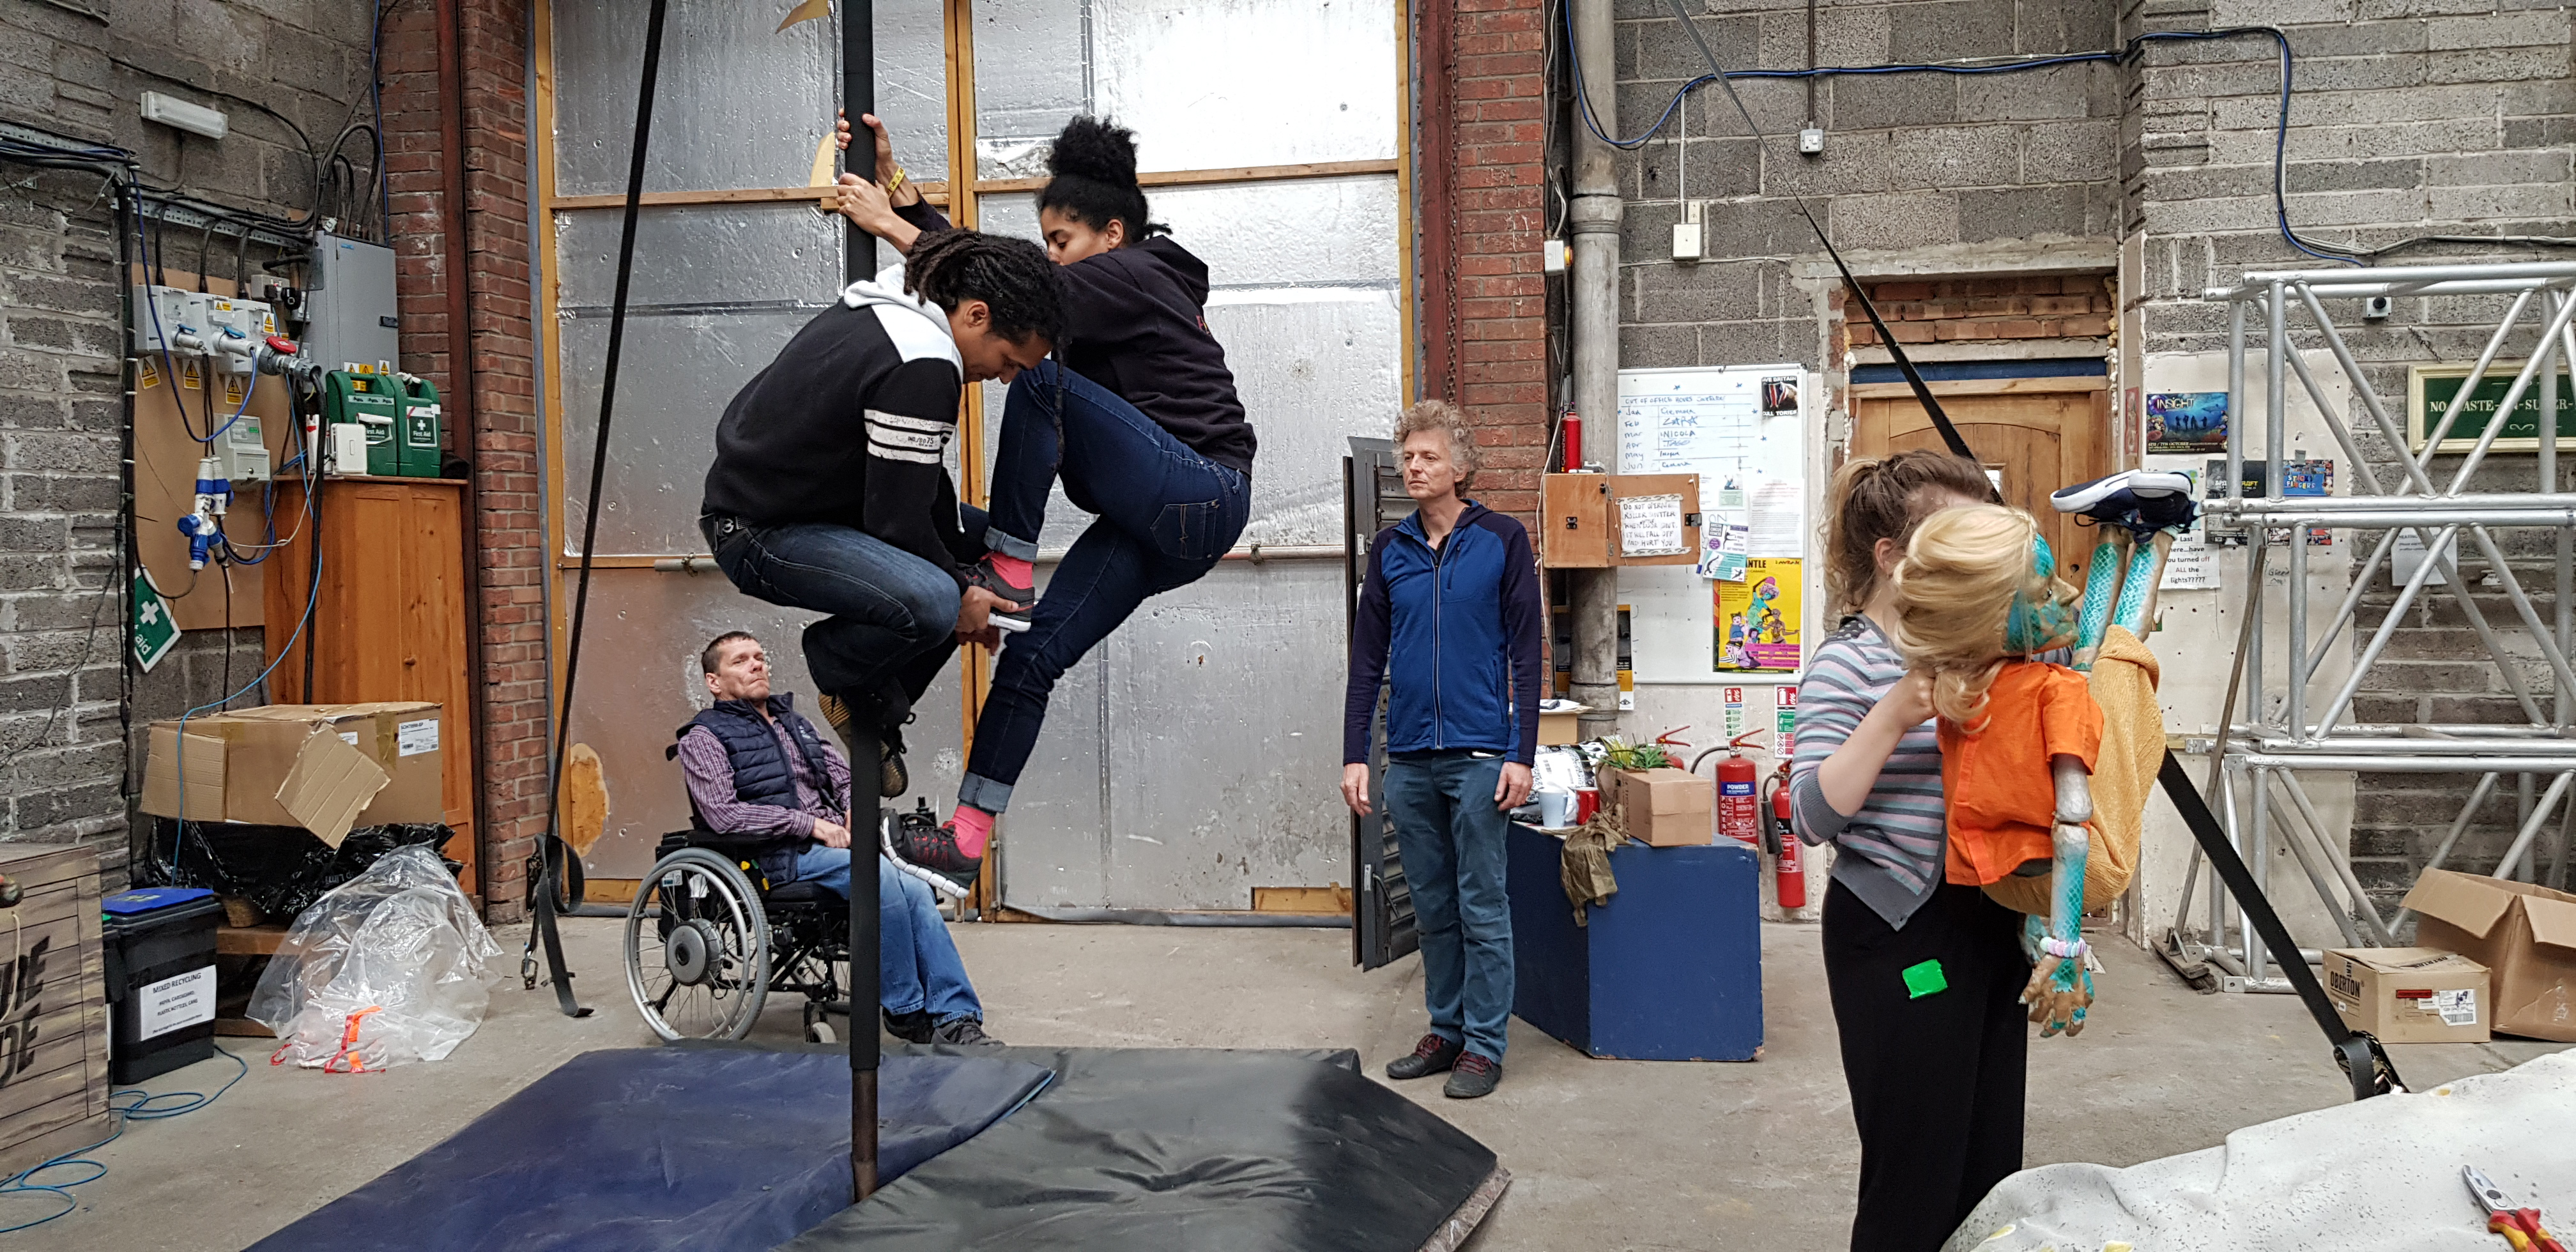 People in a studio practicing a performance